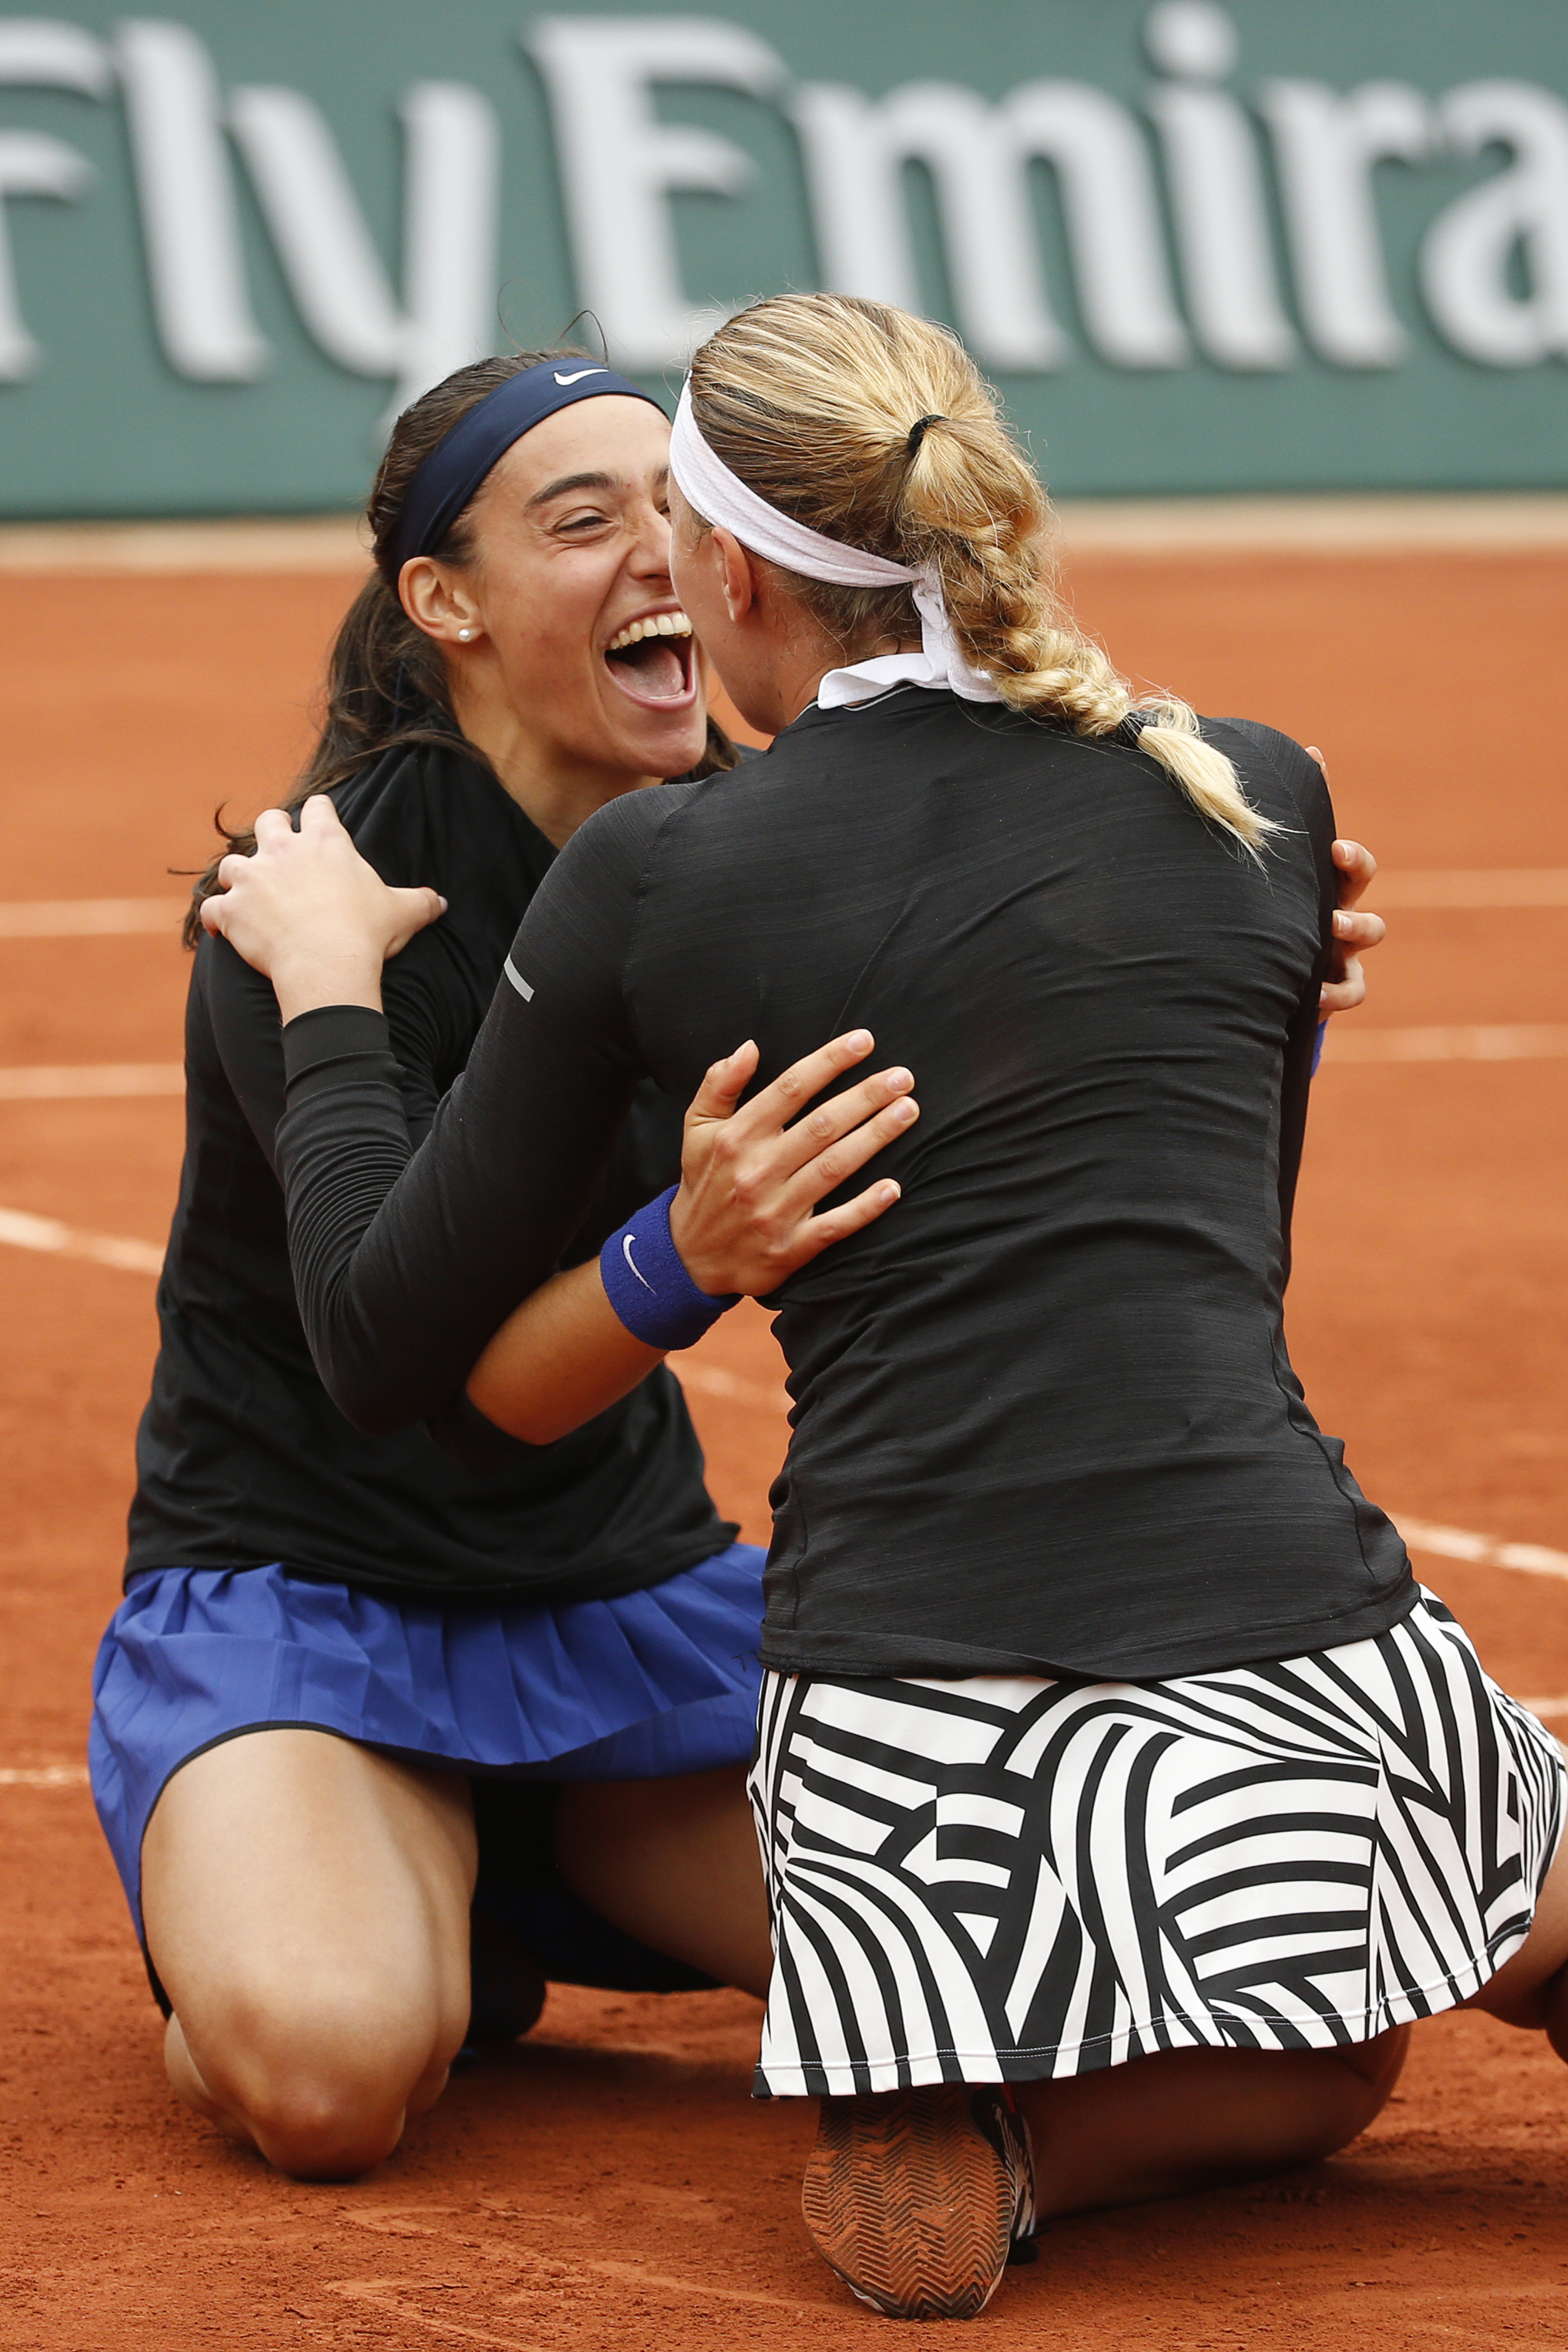 Caroline Garcia, left, and Kristina Mladenovic of France celebrate winning the women's doubles final of the French Open tennis tournament against Ekaterina Makarova and Elena Vesnina of Russia in three sets 6-3, 2-6, 6-4, at the Roland Garros stadium in P